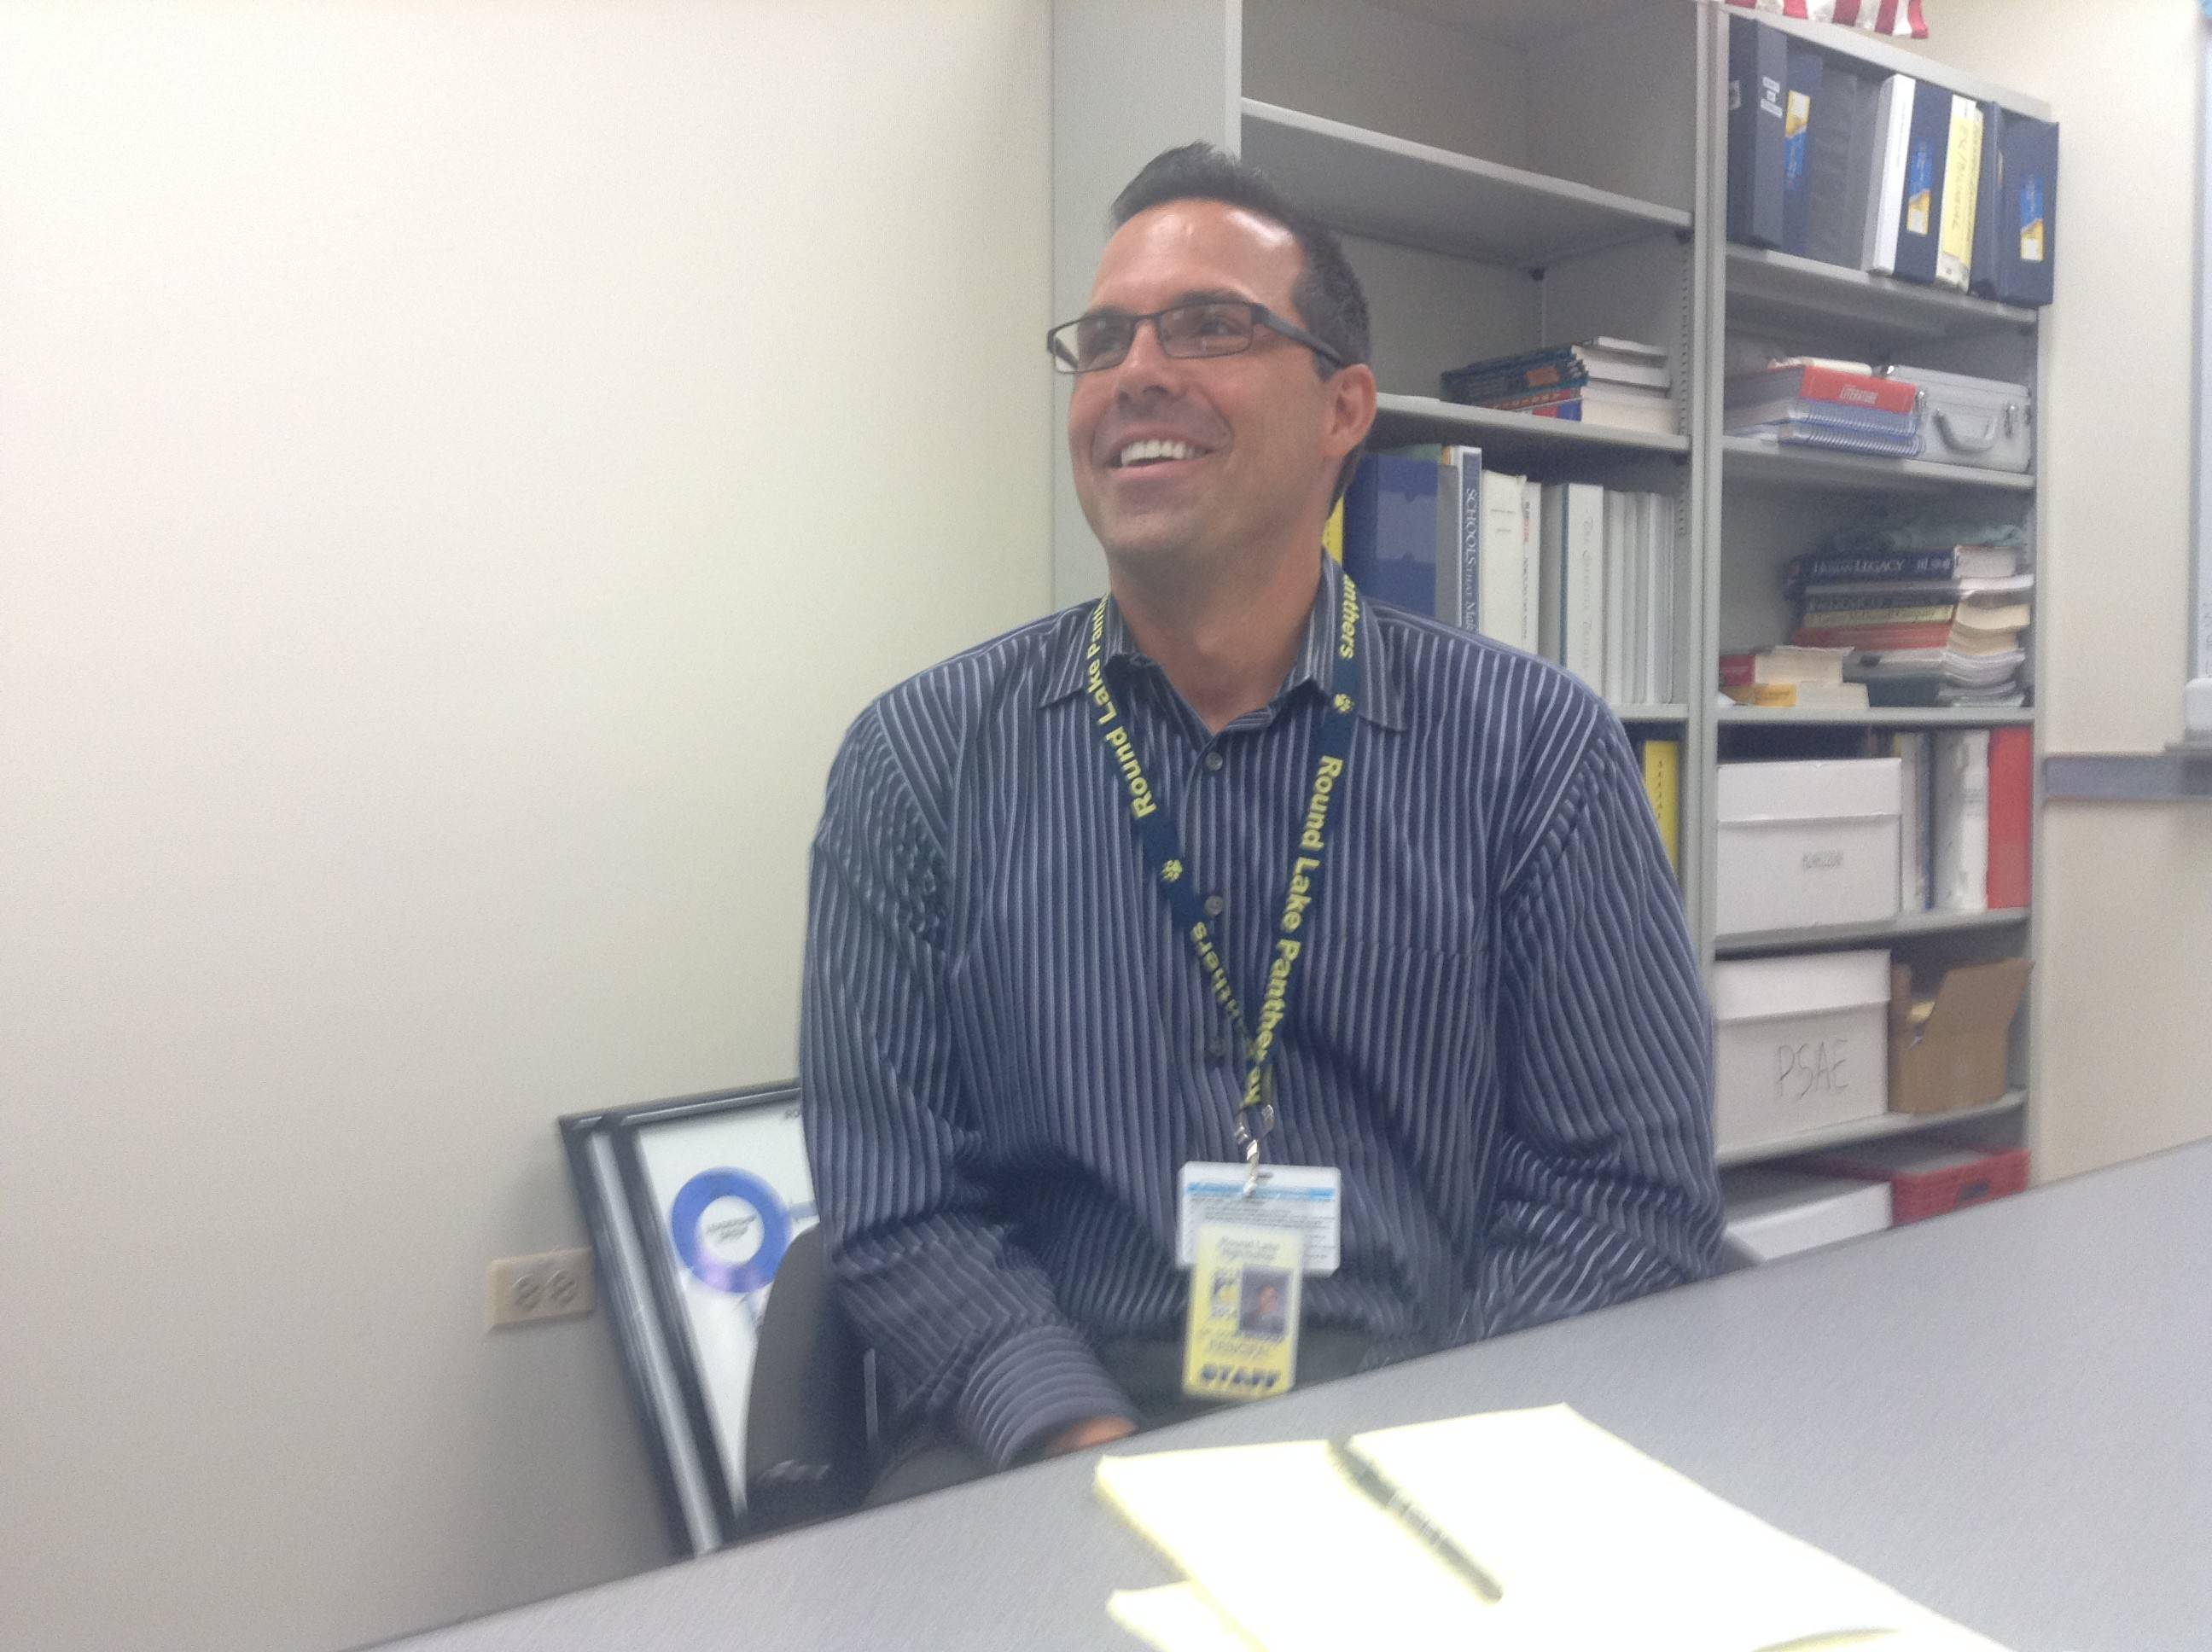 Extra duty for Round Lake High principal